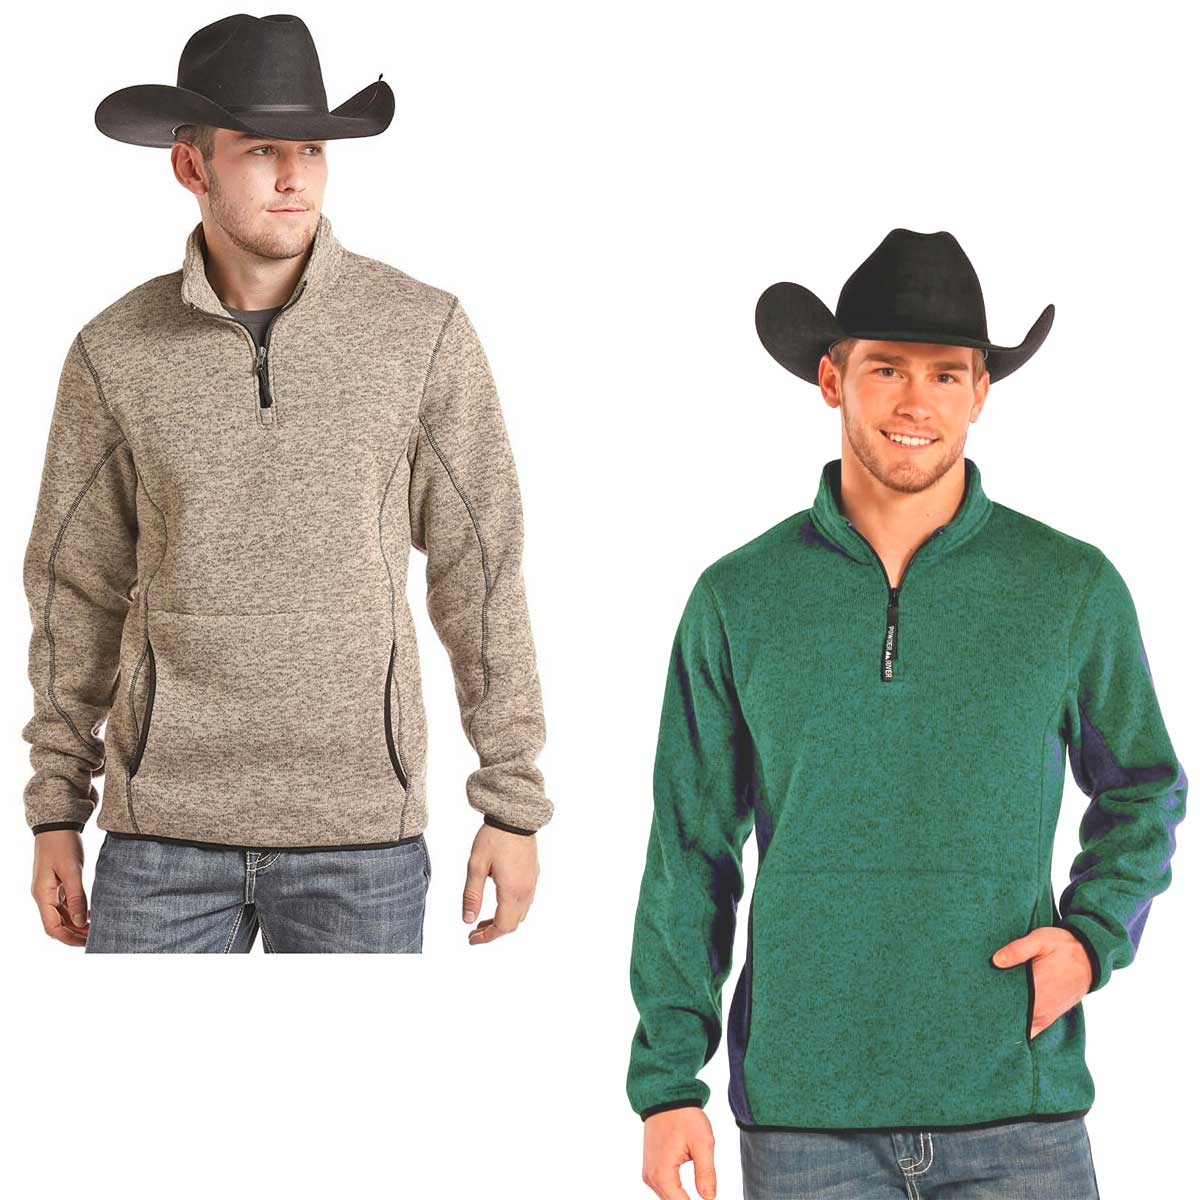 Powder River Outfitters Men's Fleece Quarter Zip Pullover